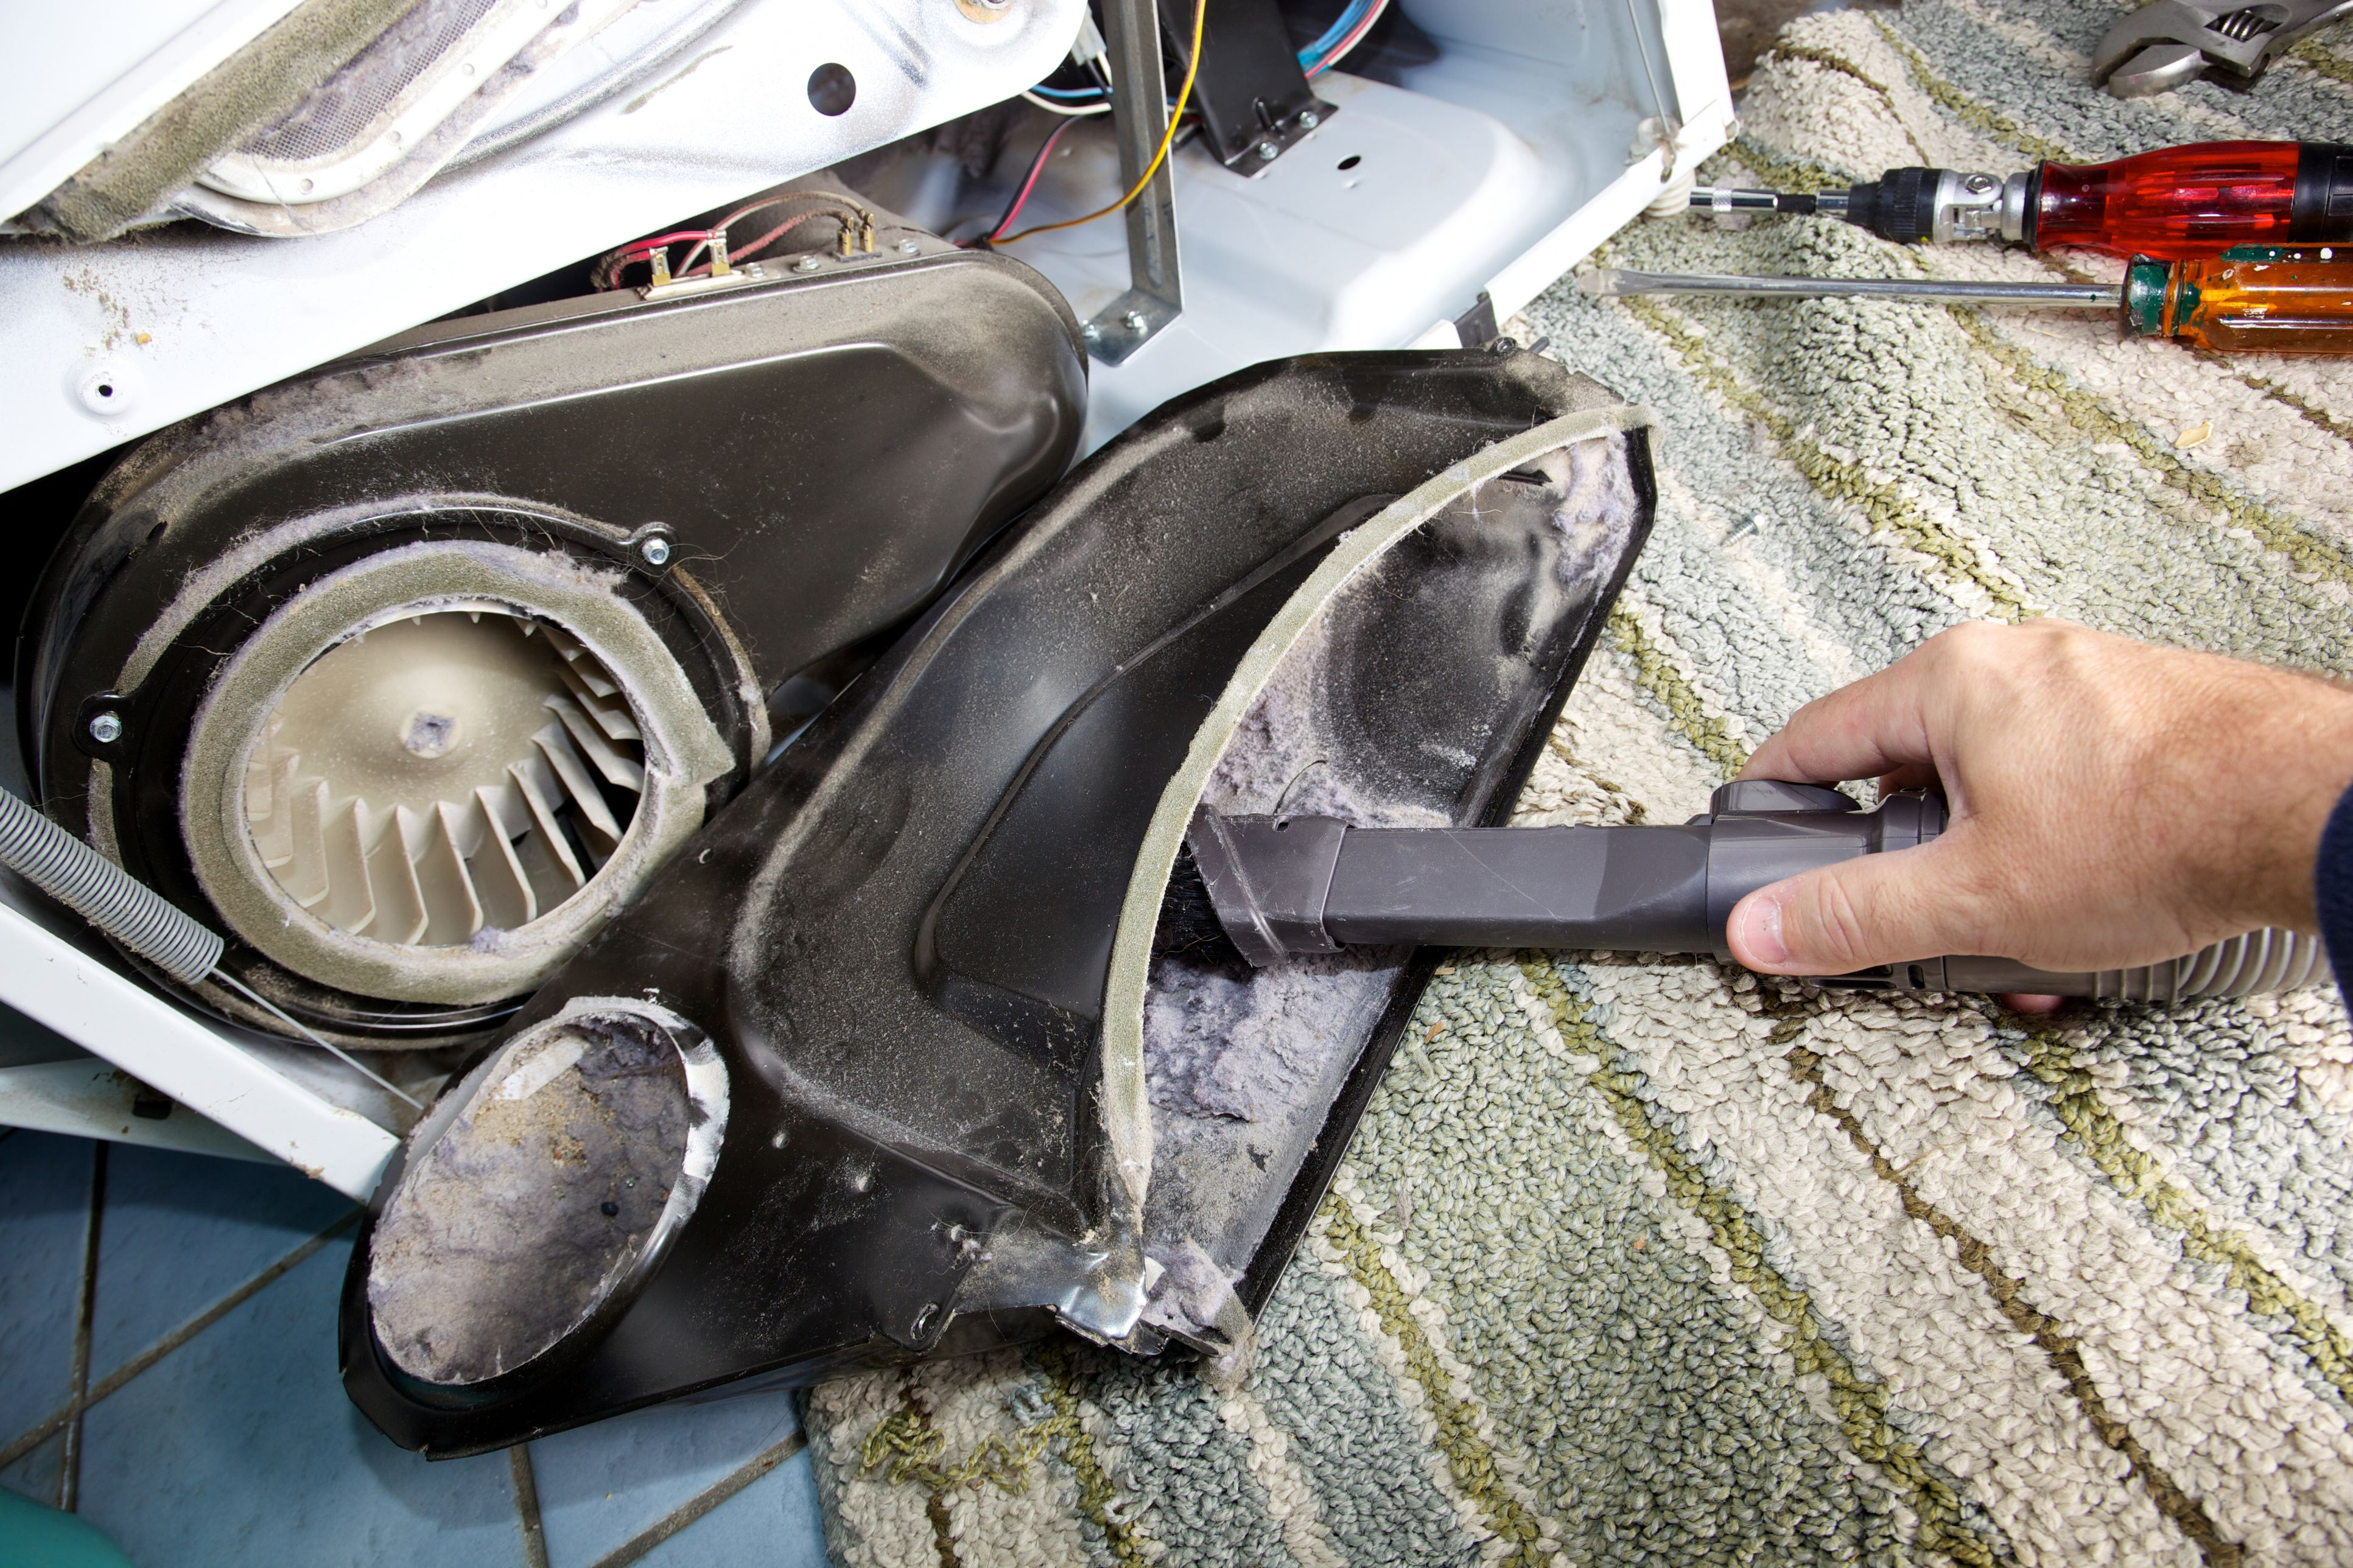 How to Clean Your Dryer Vent to Reduce Fire Risk